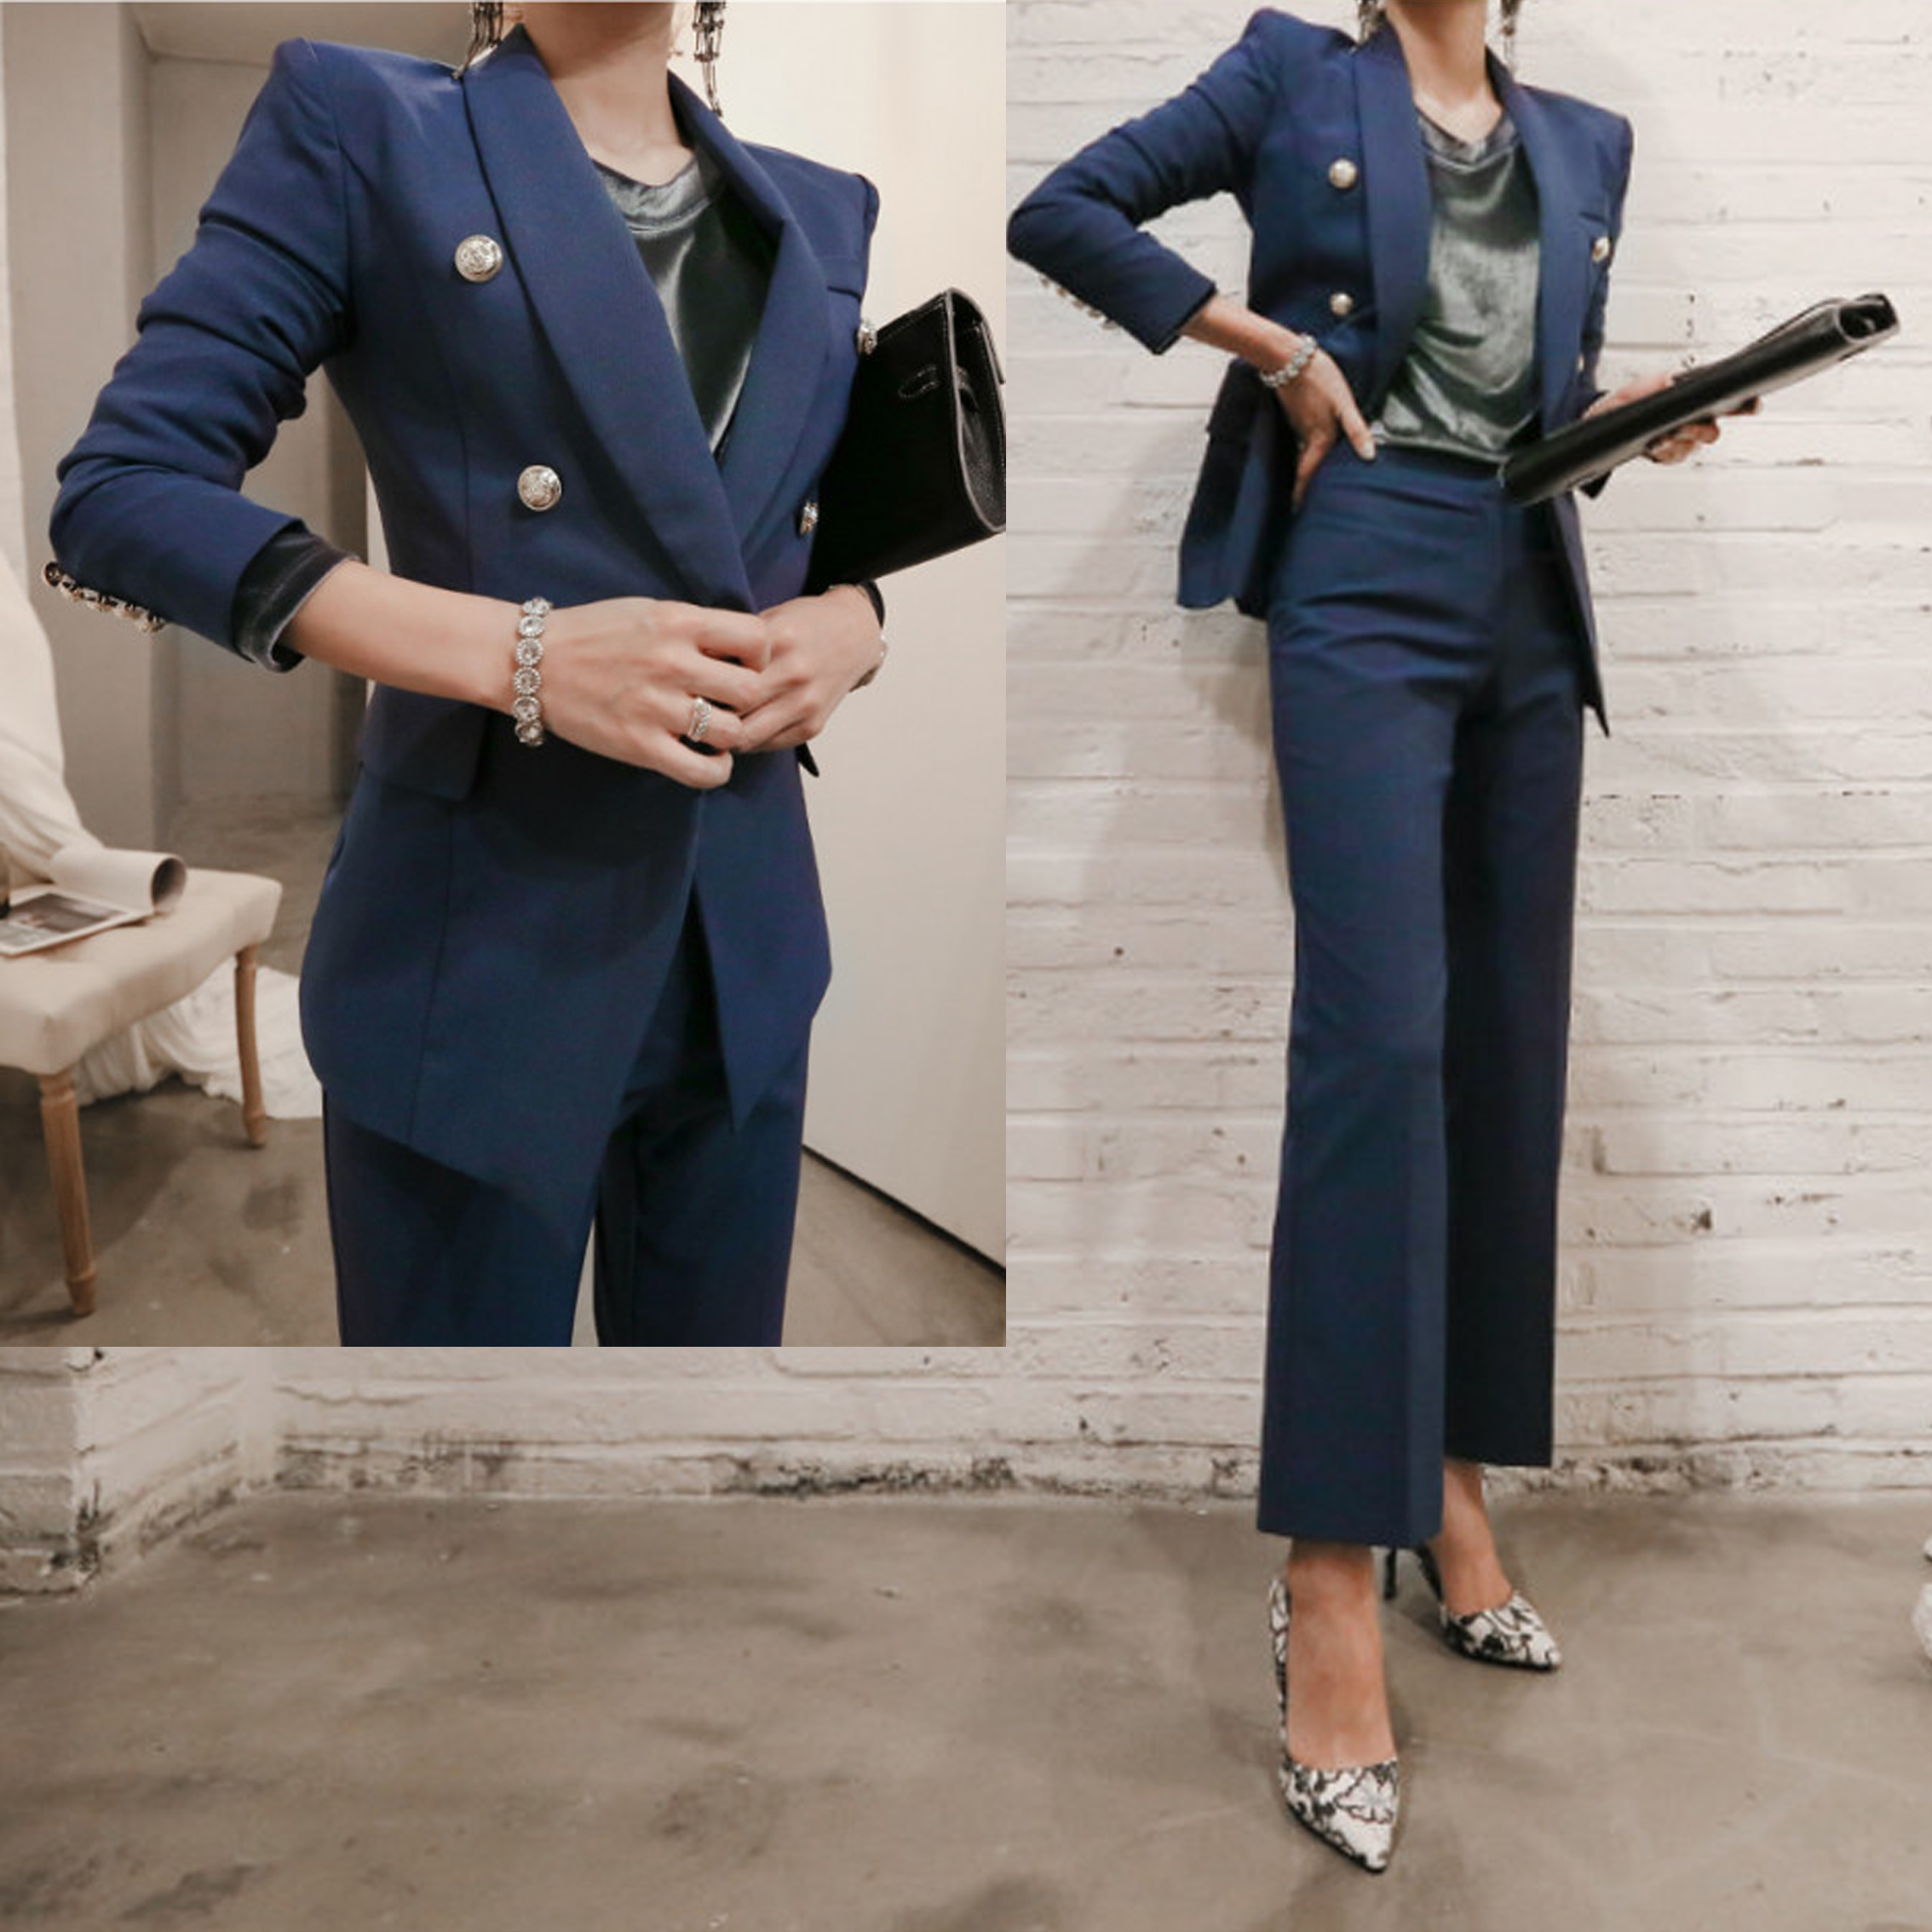 Women 39 s suit female new style pure color Slim temperament flared trousers Office ladies OL professional uniforms piece suit in Women 39 s Sets from Women 39 s Clothing